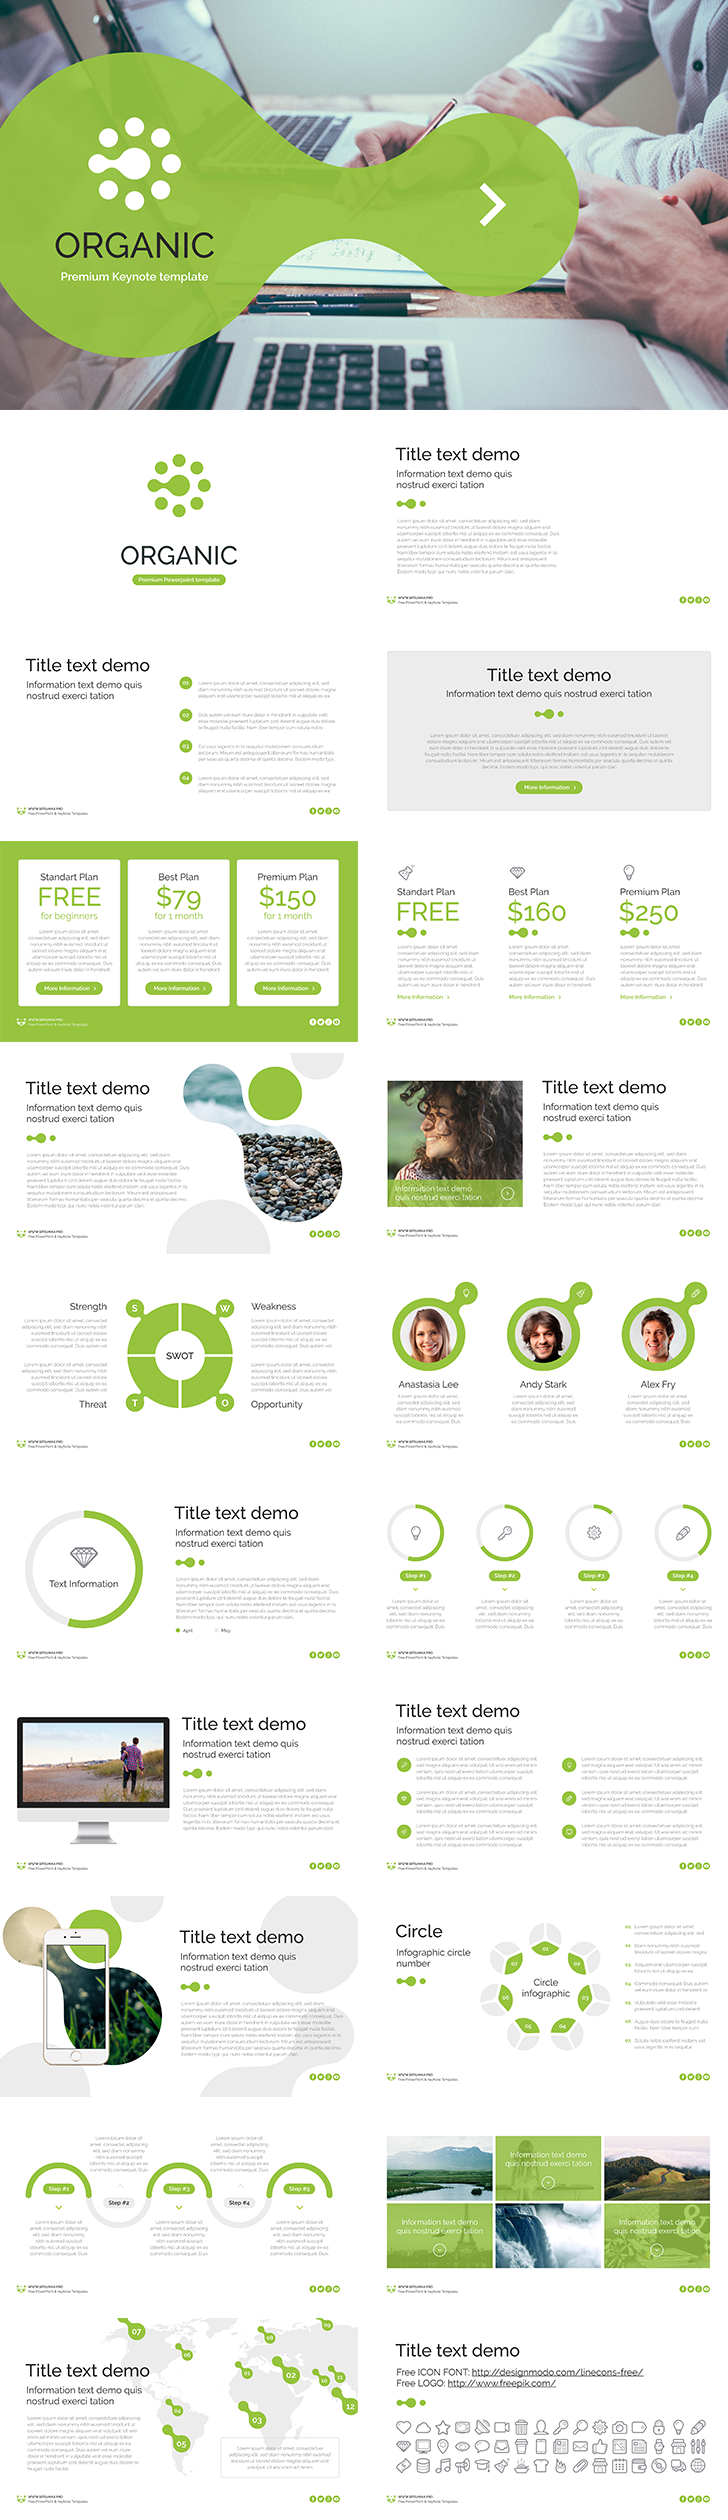 free keynote templates - free keynote template organic free download now